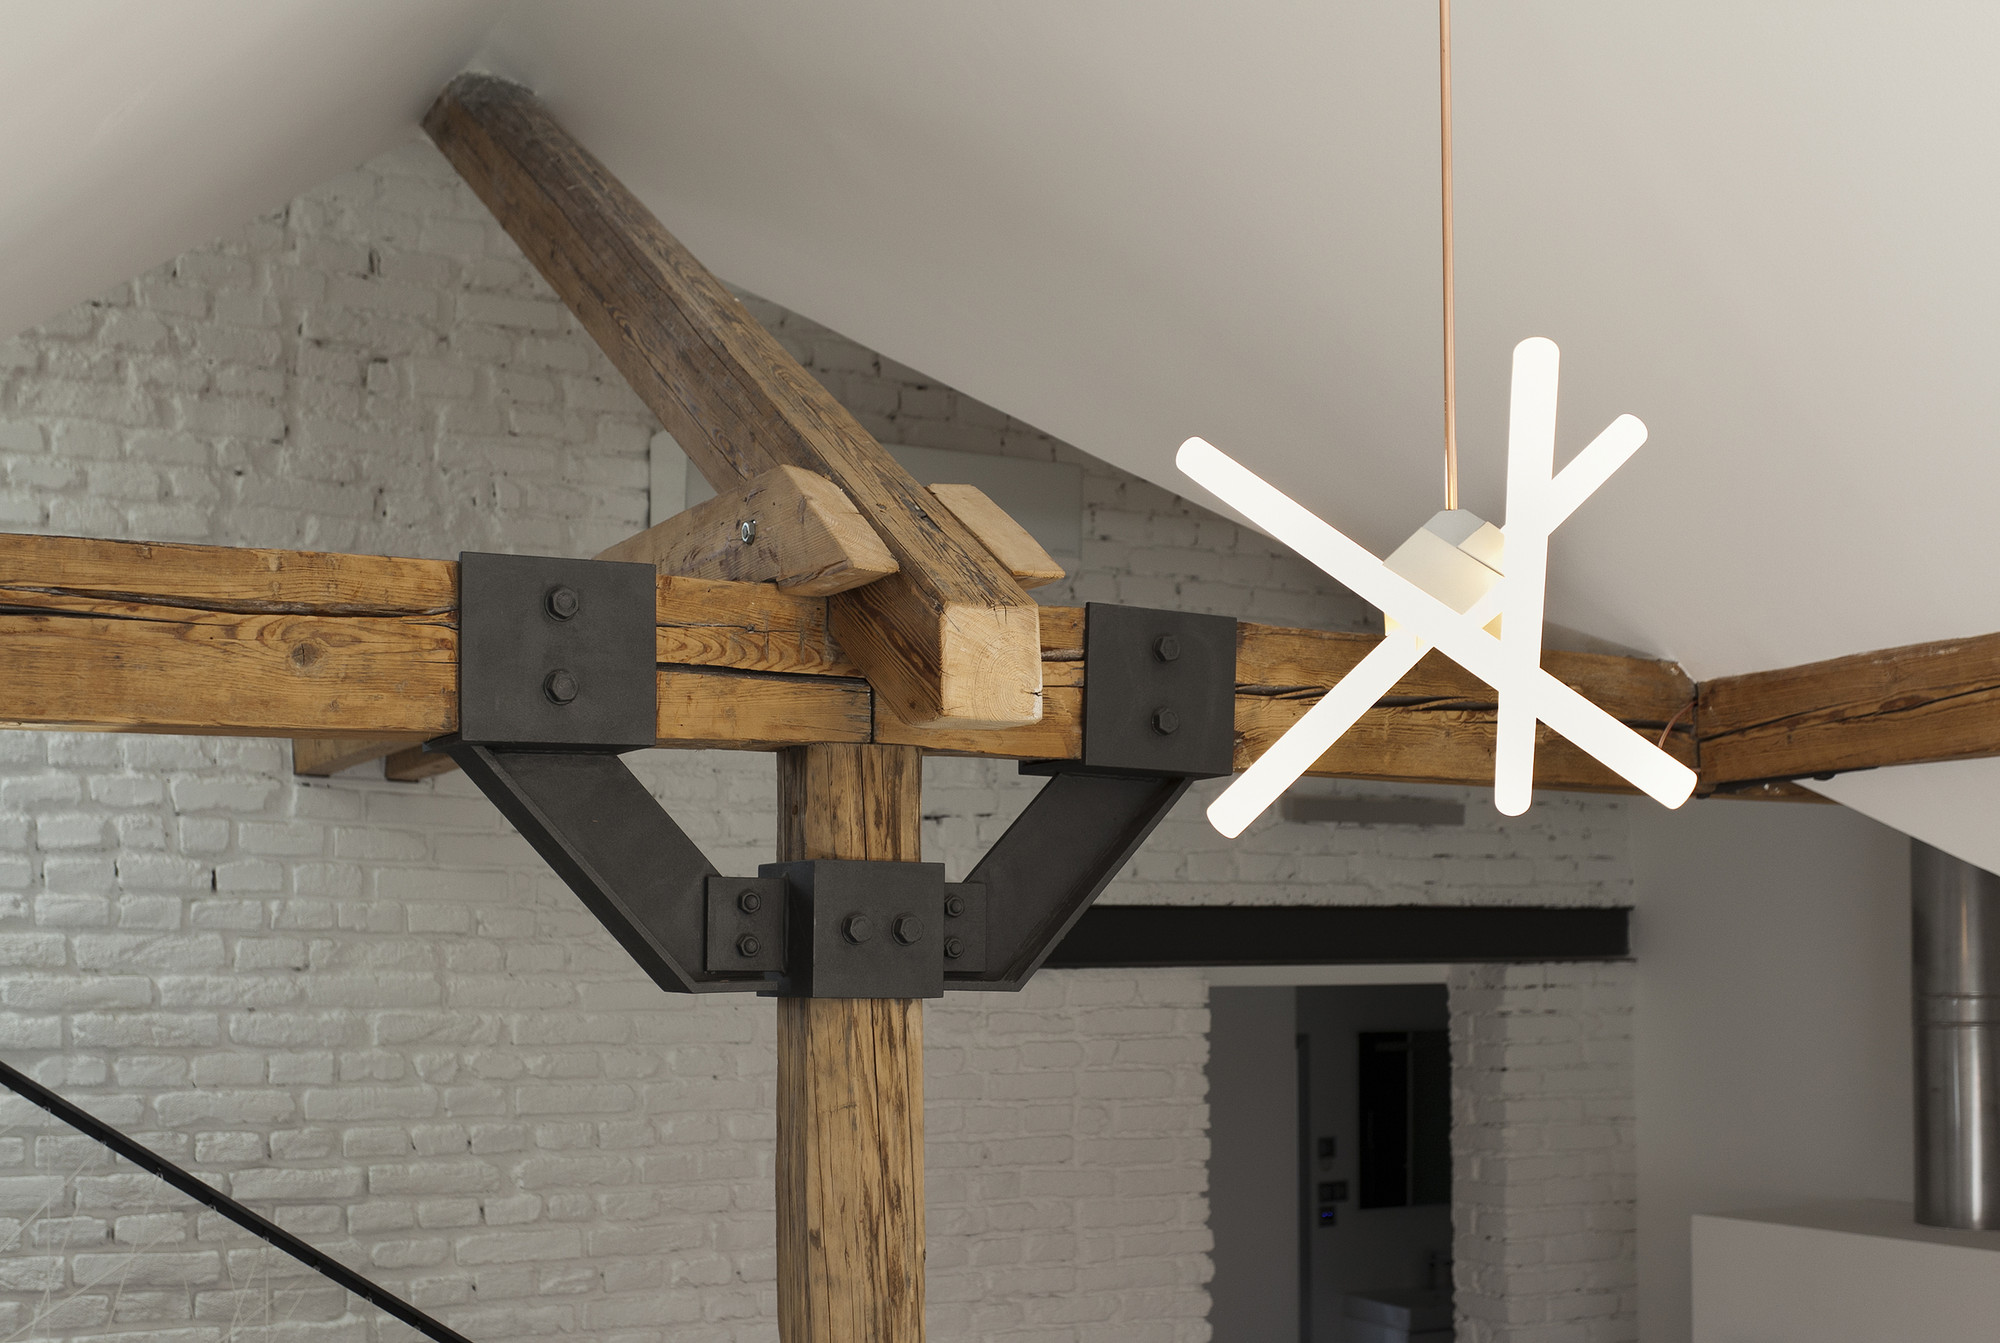 Attic_Loft_Reconstruction_-_11_-_detail_beams